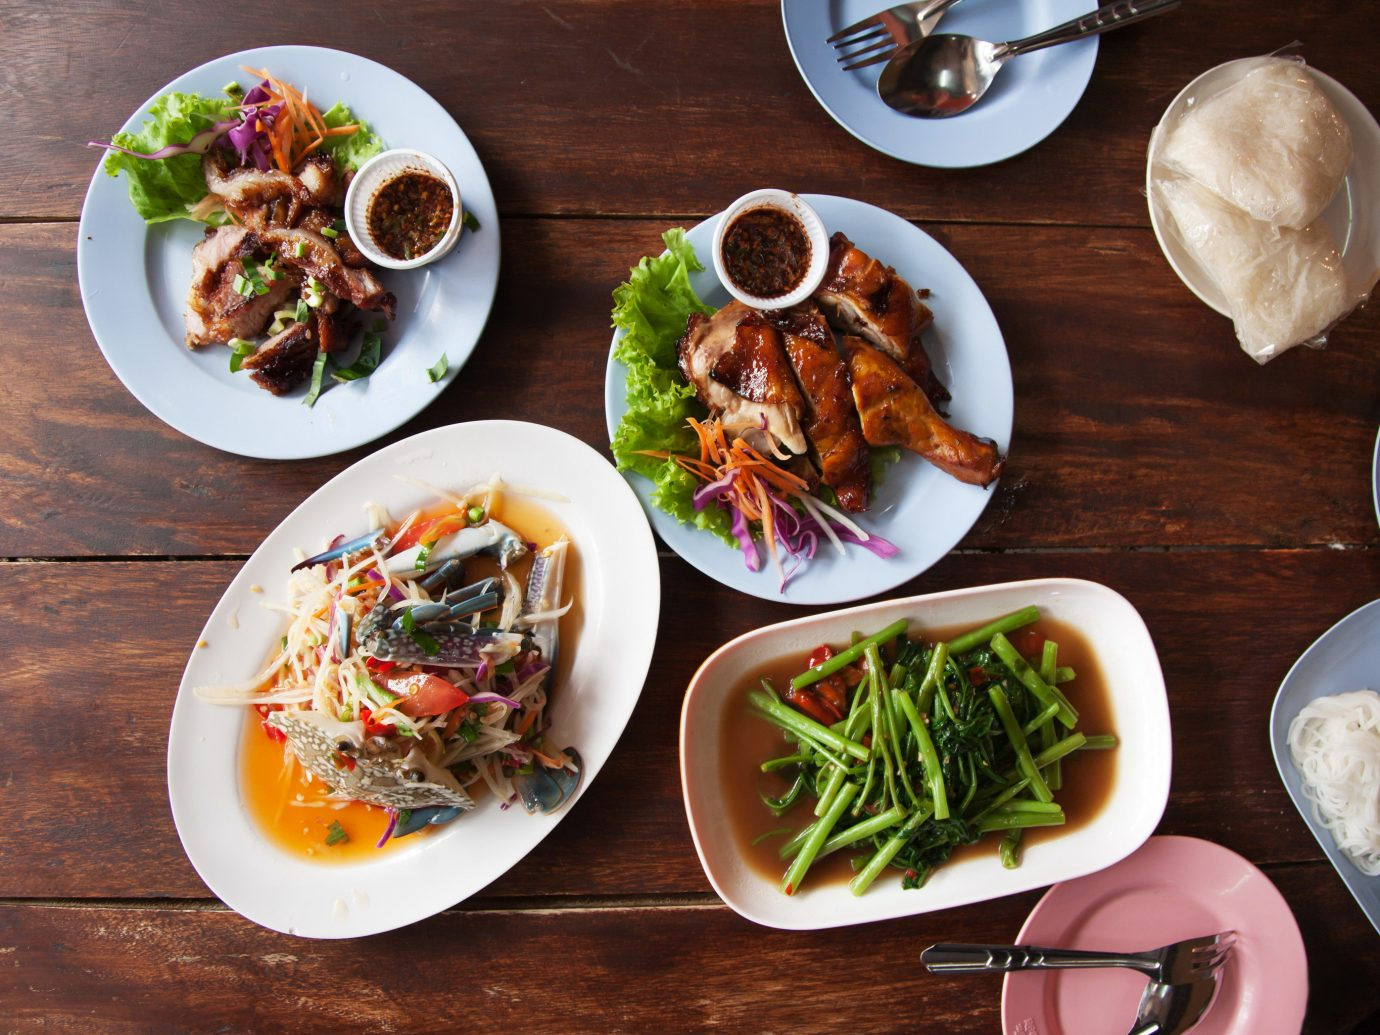 Detroit Influencers + Tastemakers Trip Ideas food table plate meal dish lunch cuisine brunch appetizer different asian food vegetarian food thai food breakfast Seafood plate lunch recipe meze southeast asian food side dish vegetable meat several piece de resistance